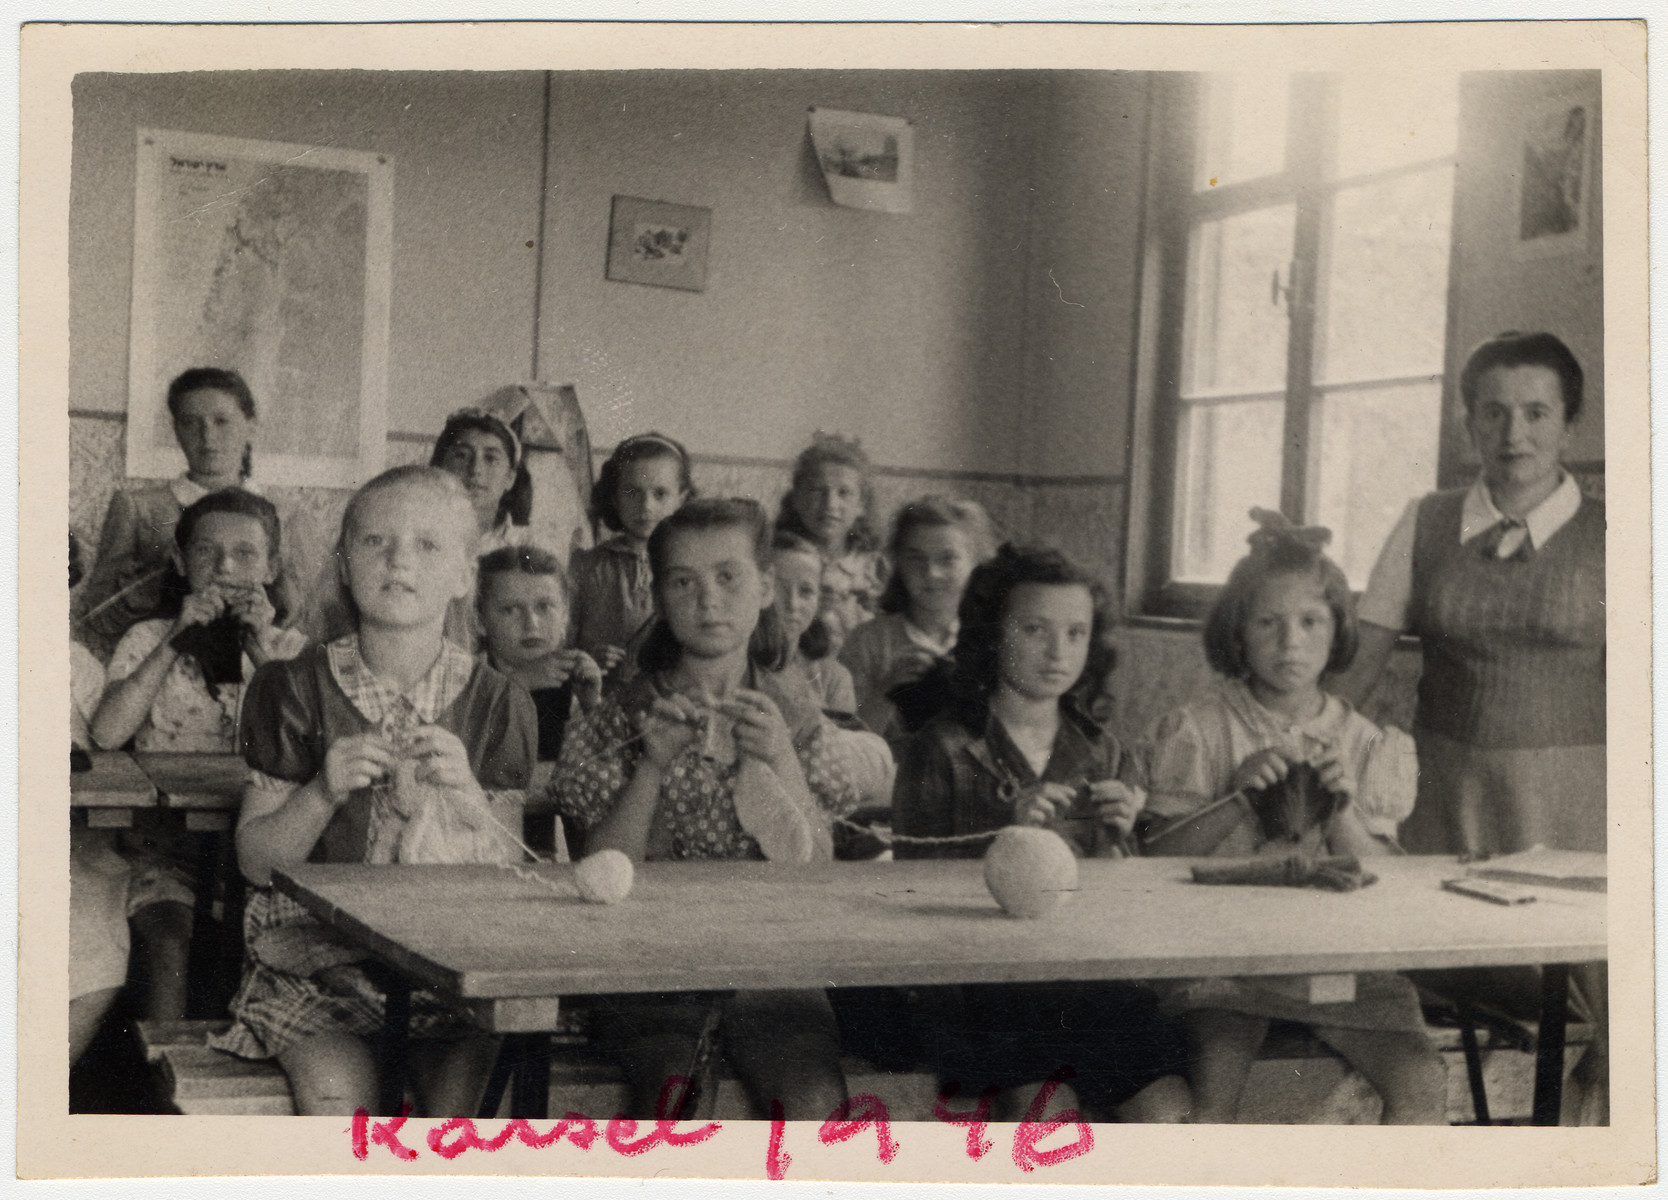 Rose Goldfarb (the donor's mother) teaches a knitting class in the Kassel displaced persons camp.